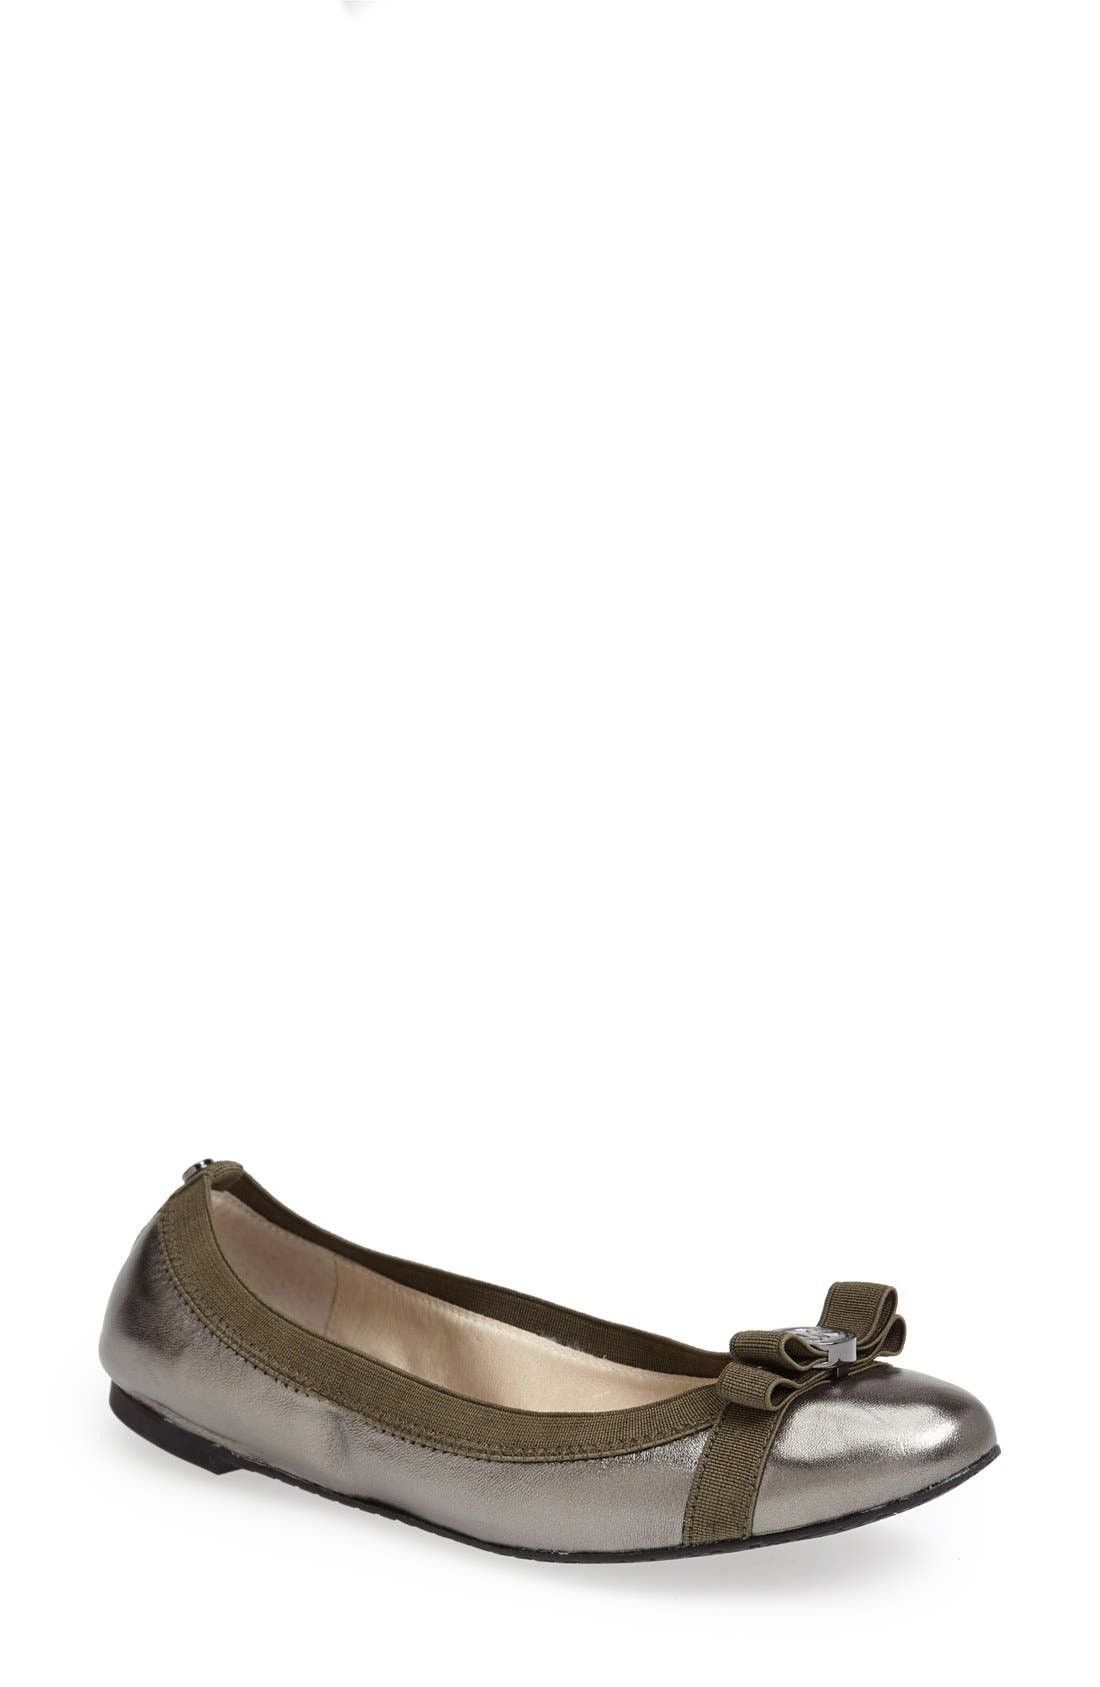 Alternate Image 1 Selected - MICHAEL Michael Kors 'Dixie' Ballet Flat